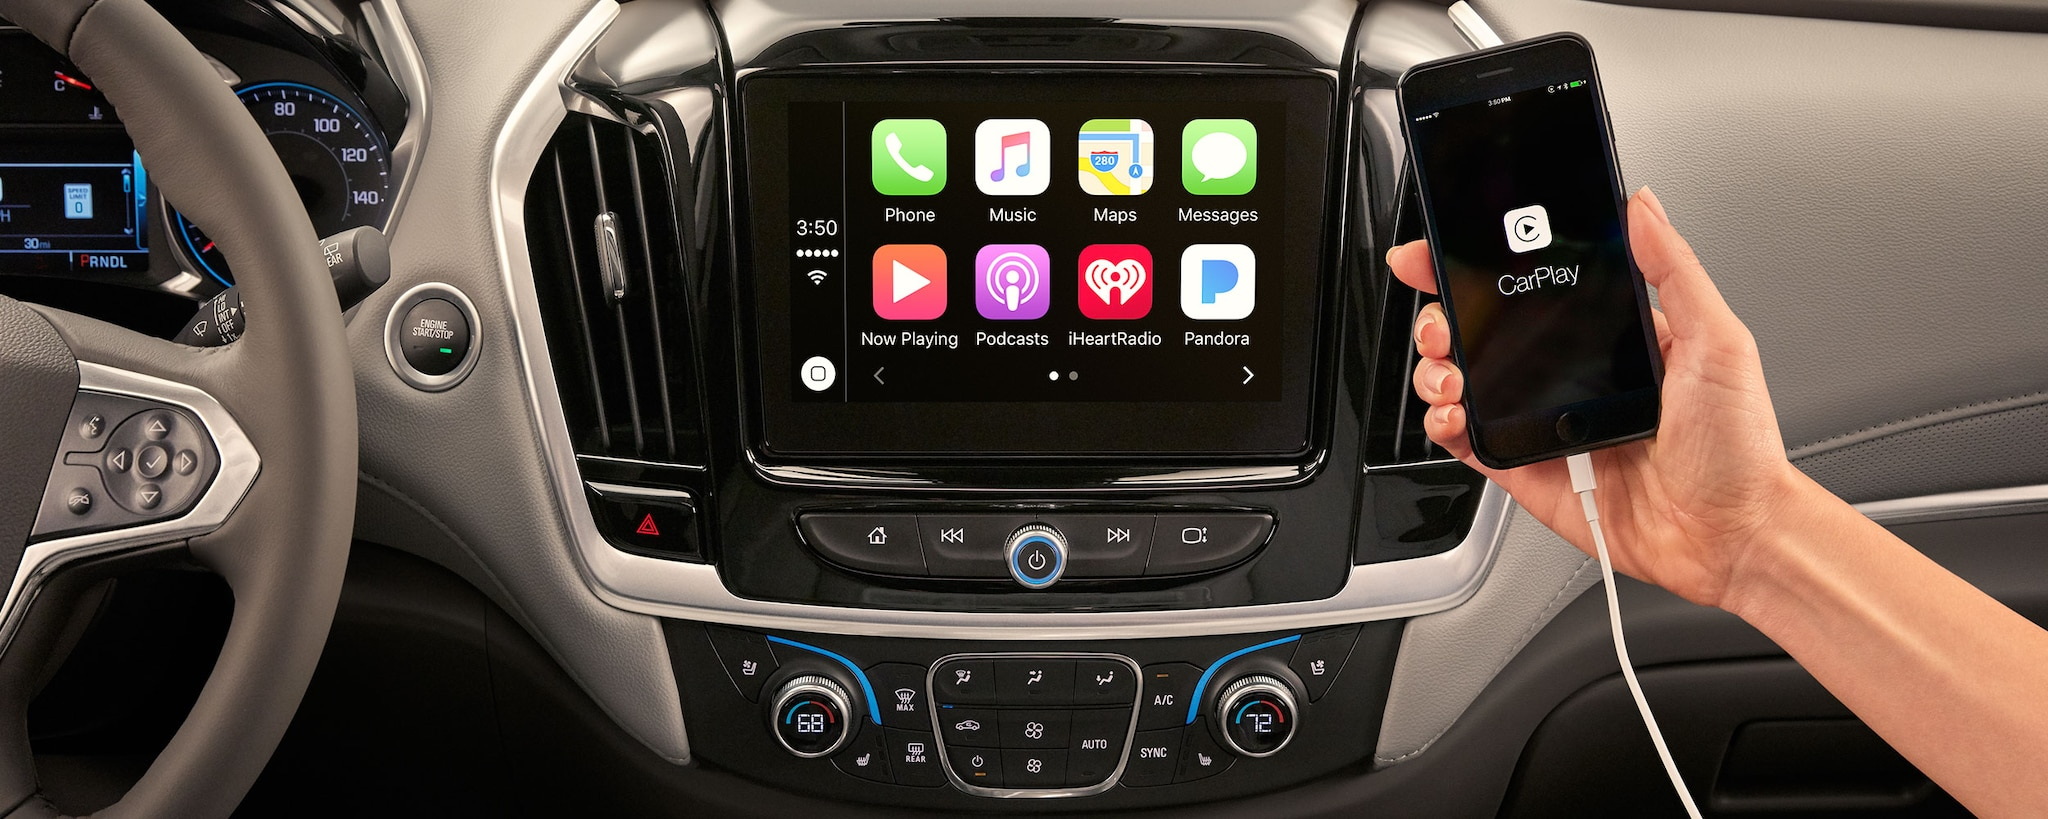 2018 Traverse Midsize SUV Technology: Apple CarPlay Display